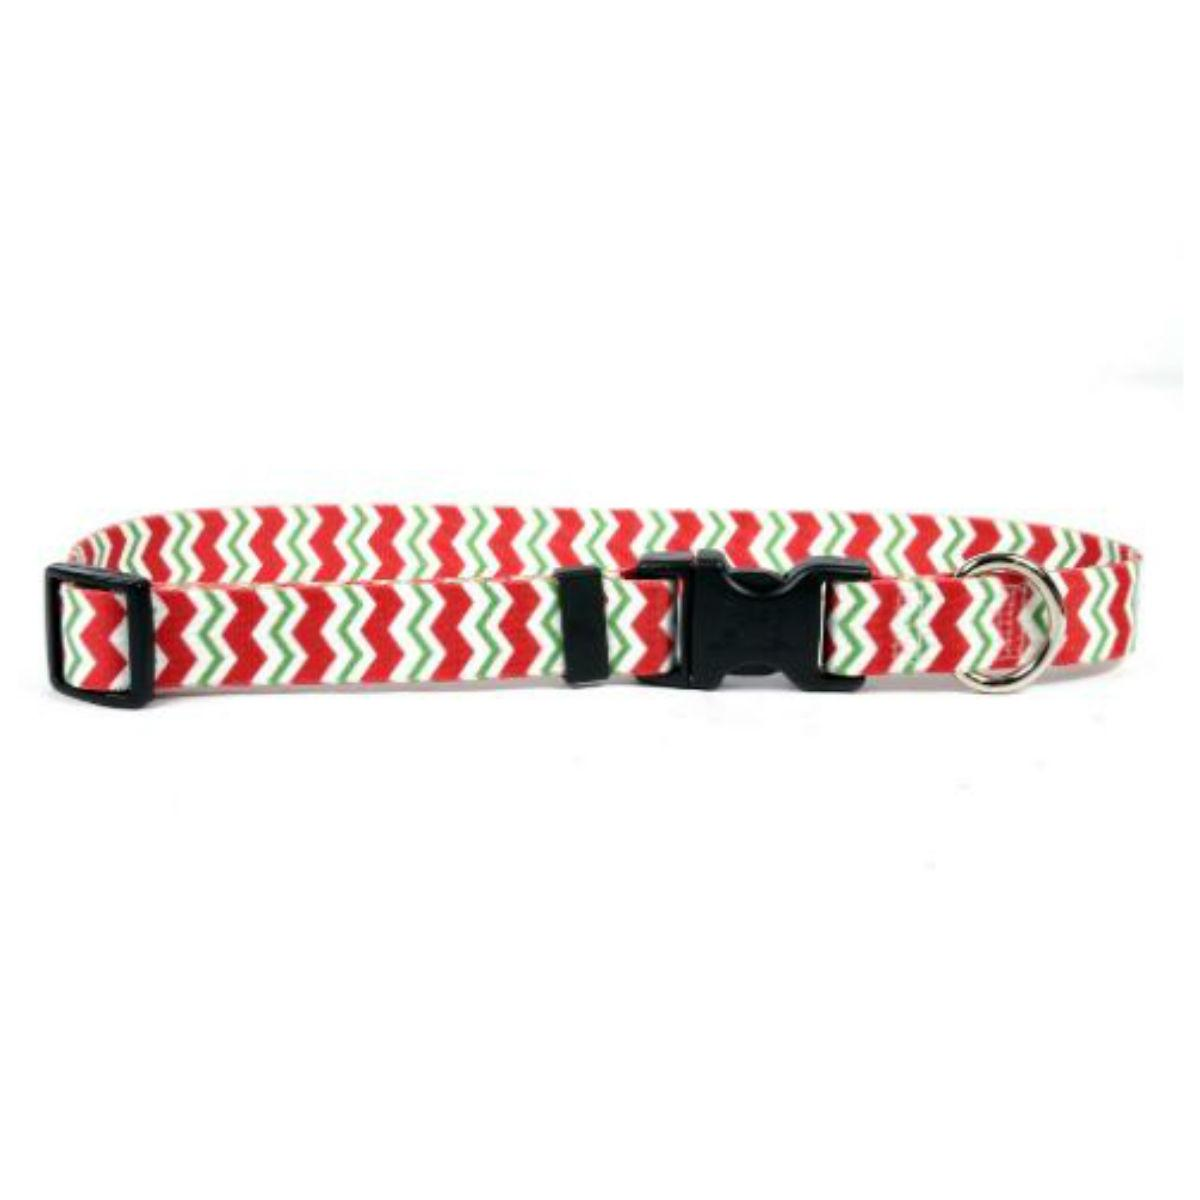 Chevron Dog Collar by Yellow Dog - Peppermint